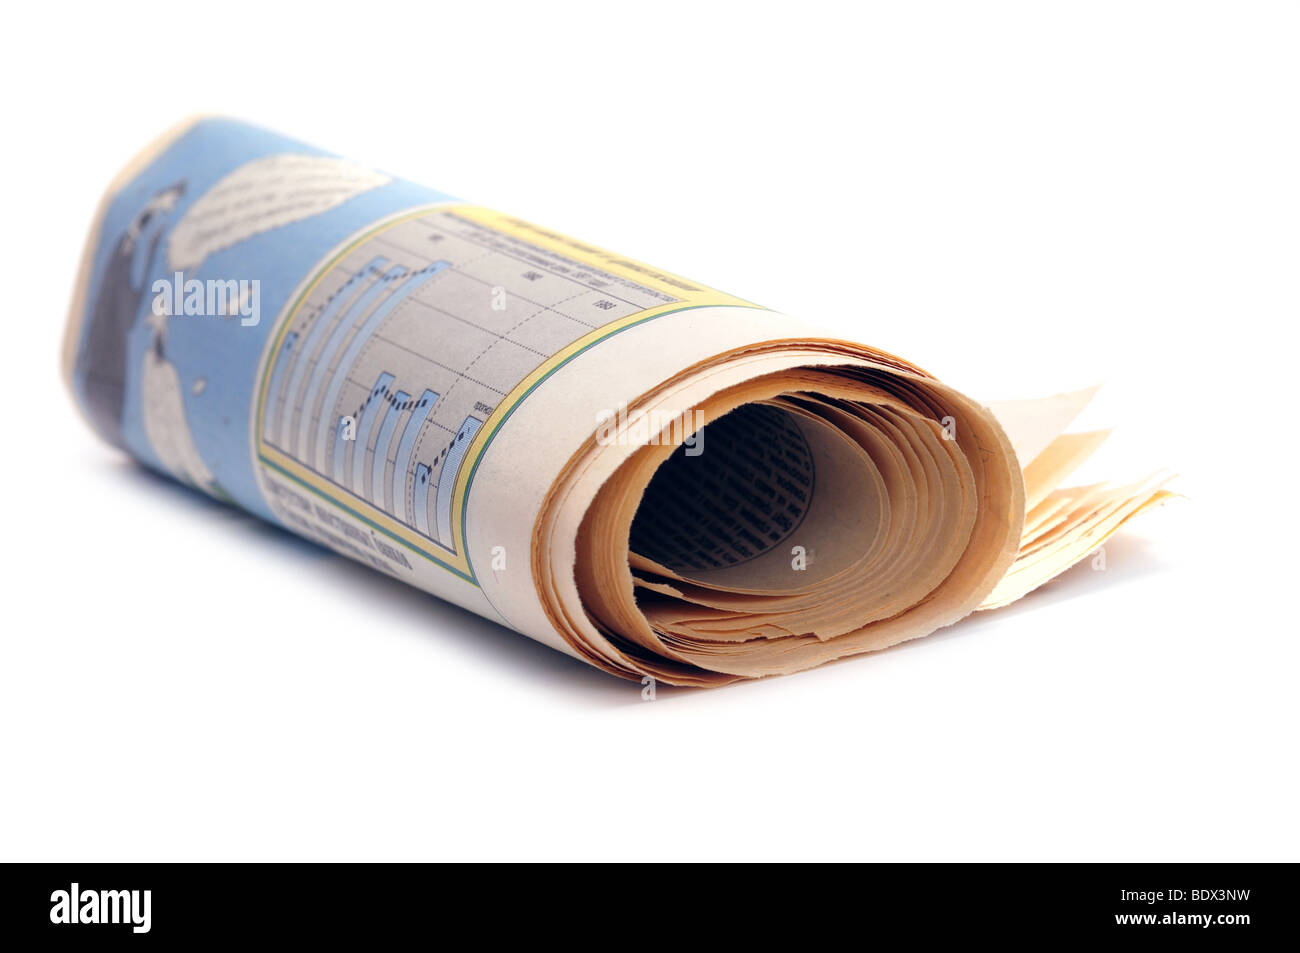 Newspaper rolled up isolated on white - Stock Image